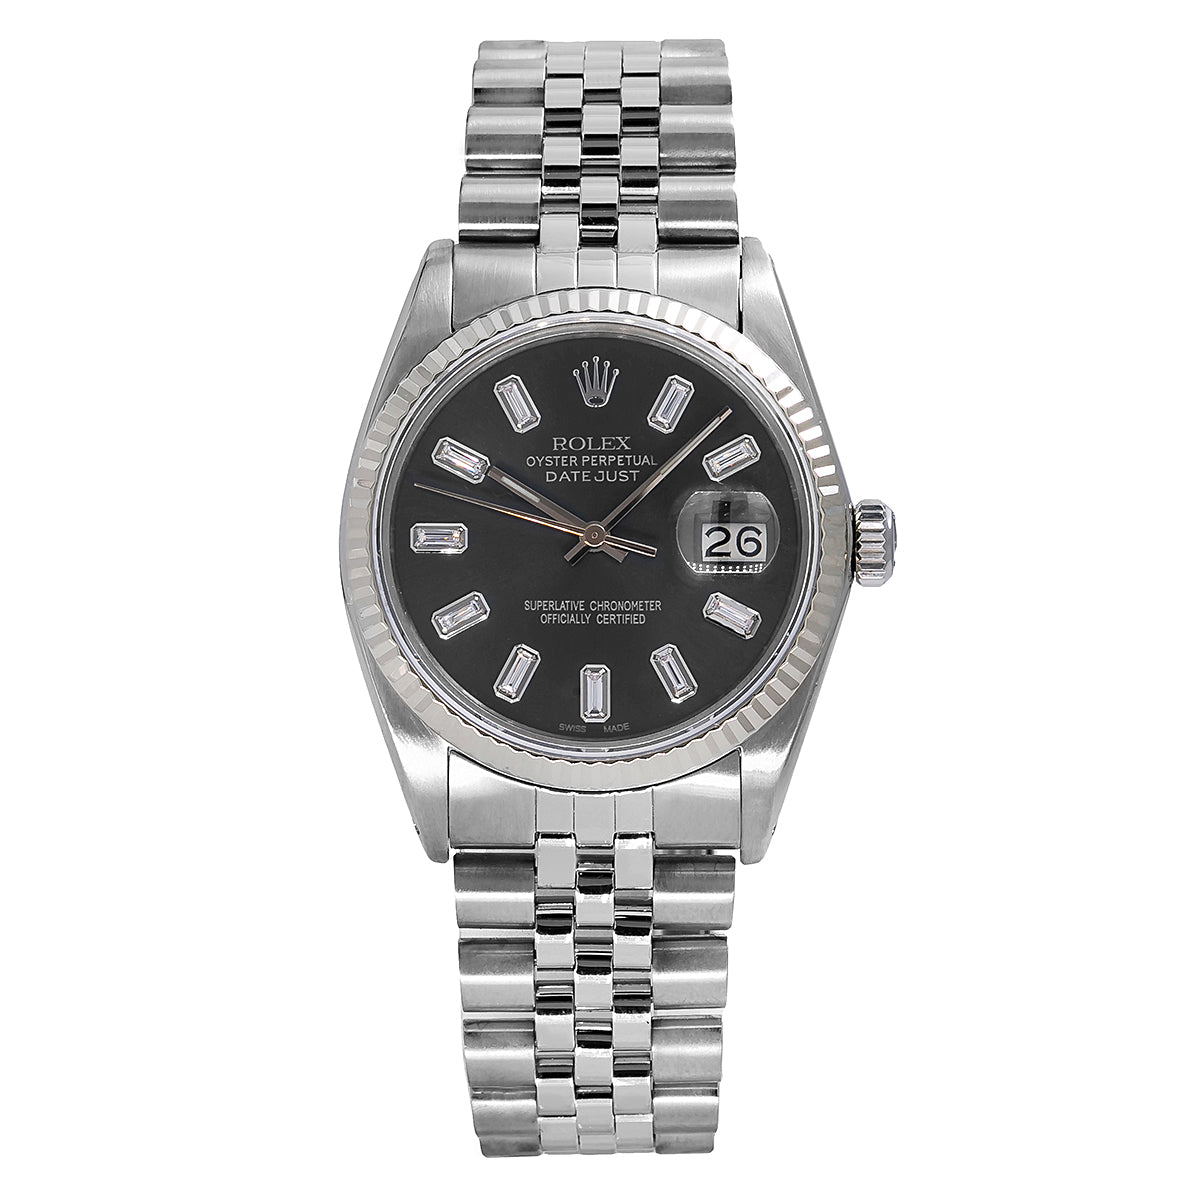 Rolex Datejust 16014 36mm Black Dial with Baguette Hour Marks